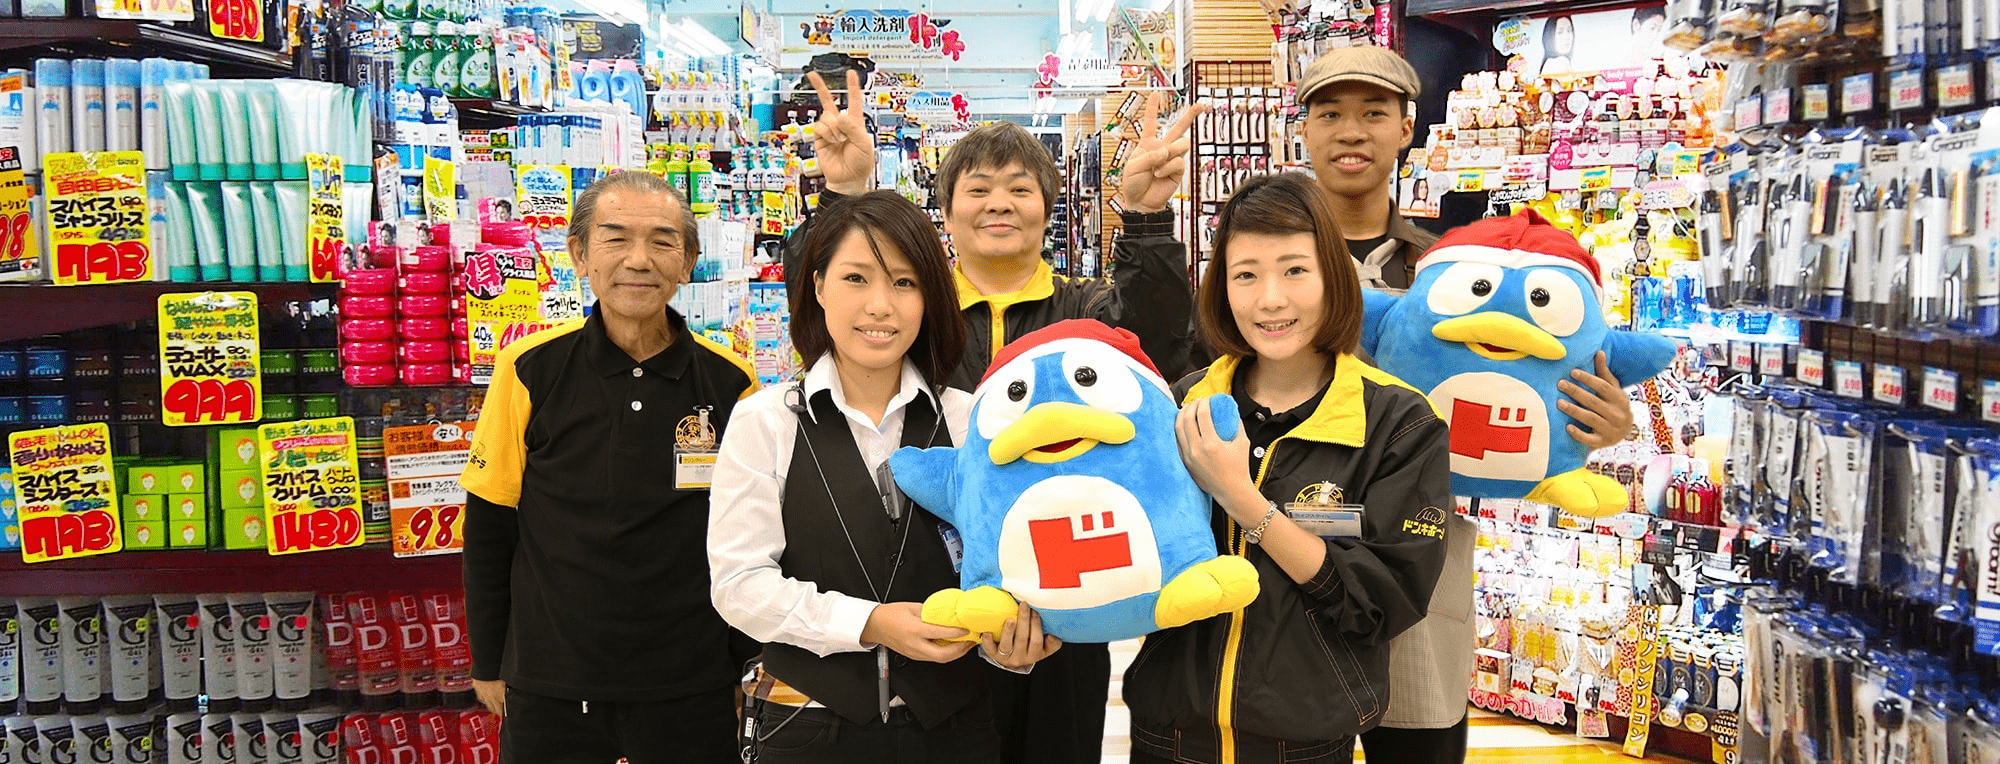 FastJobs (7) - Donki sales associate